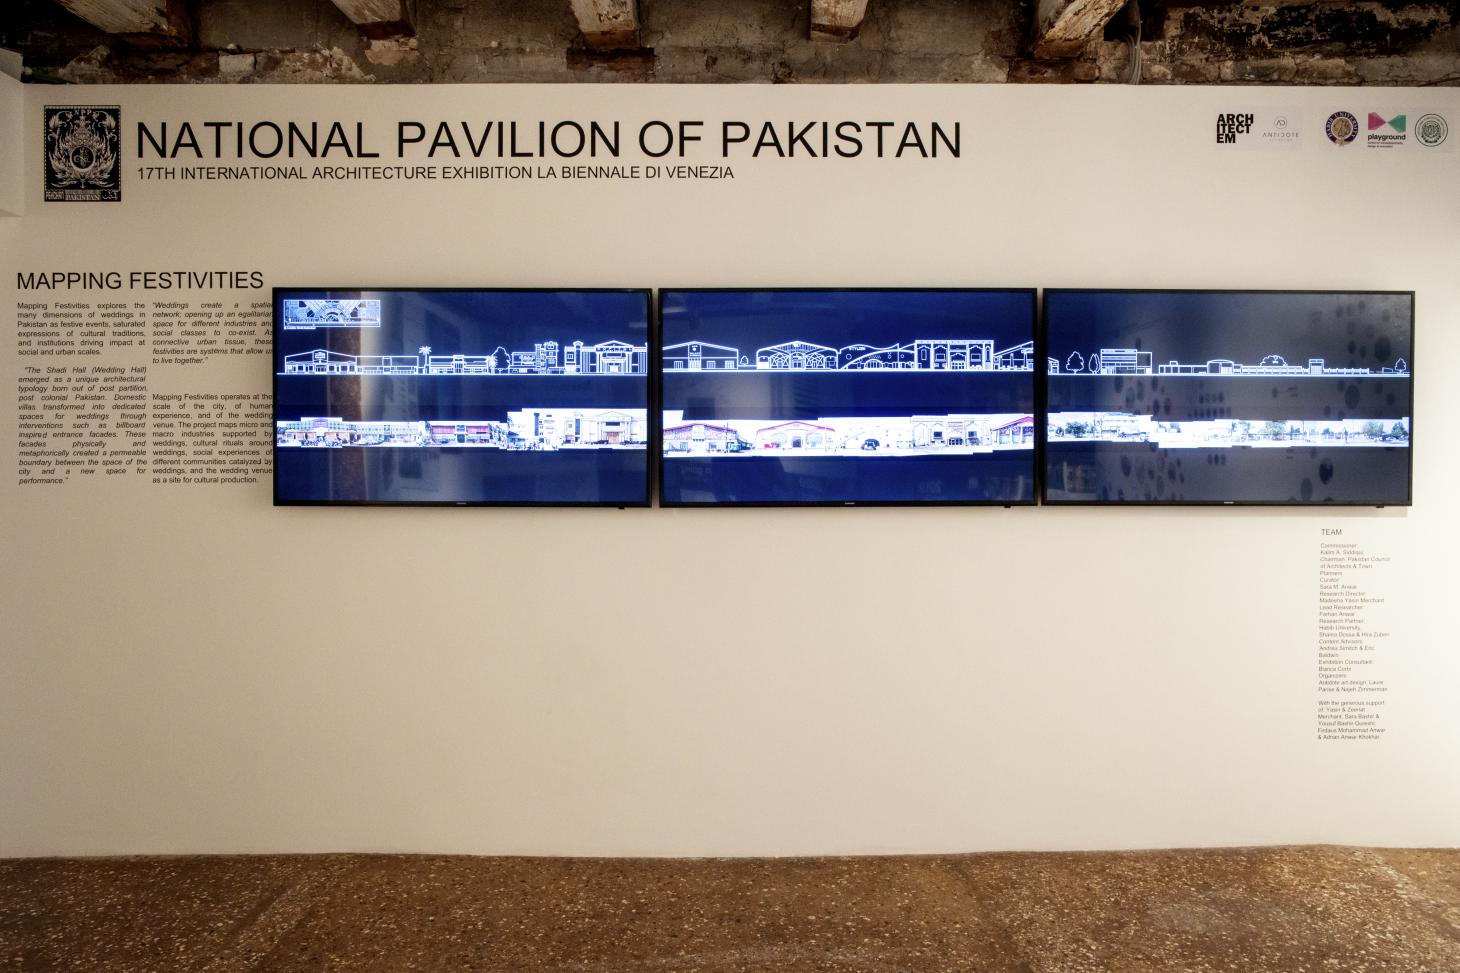 pakistan pavilion includes screened materials at the 2021 Venice architecture biennale